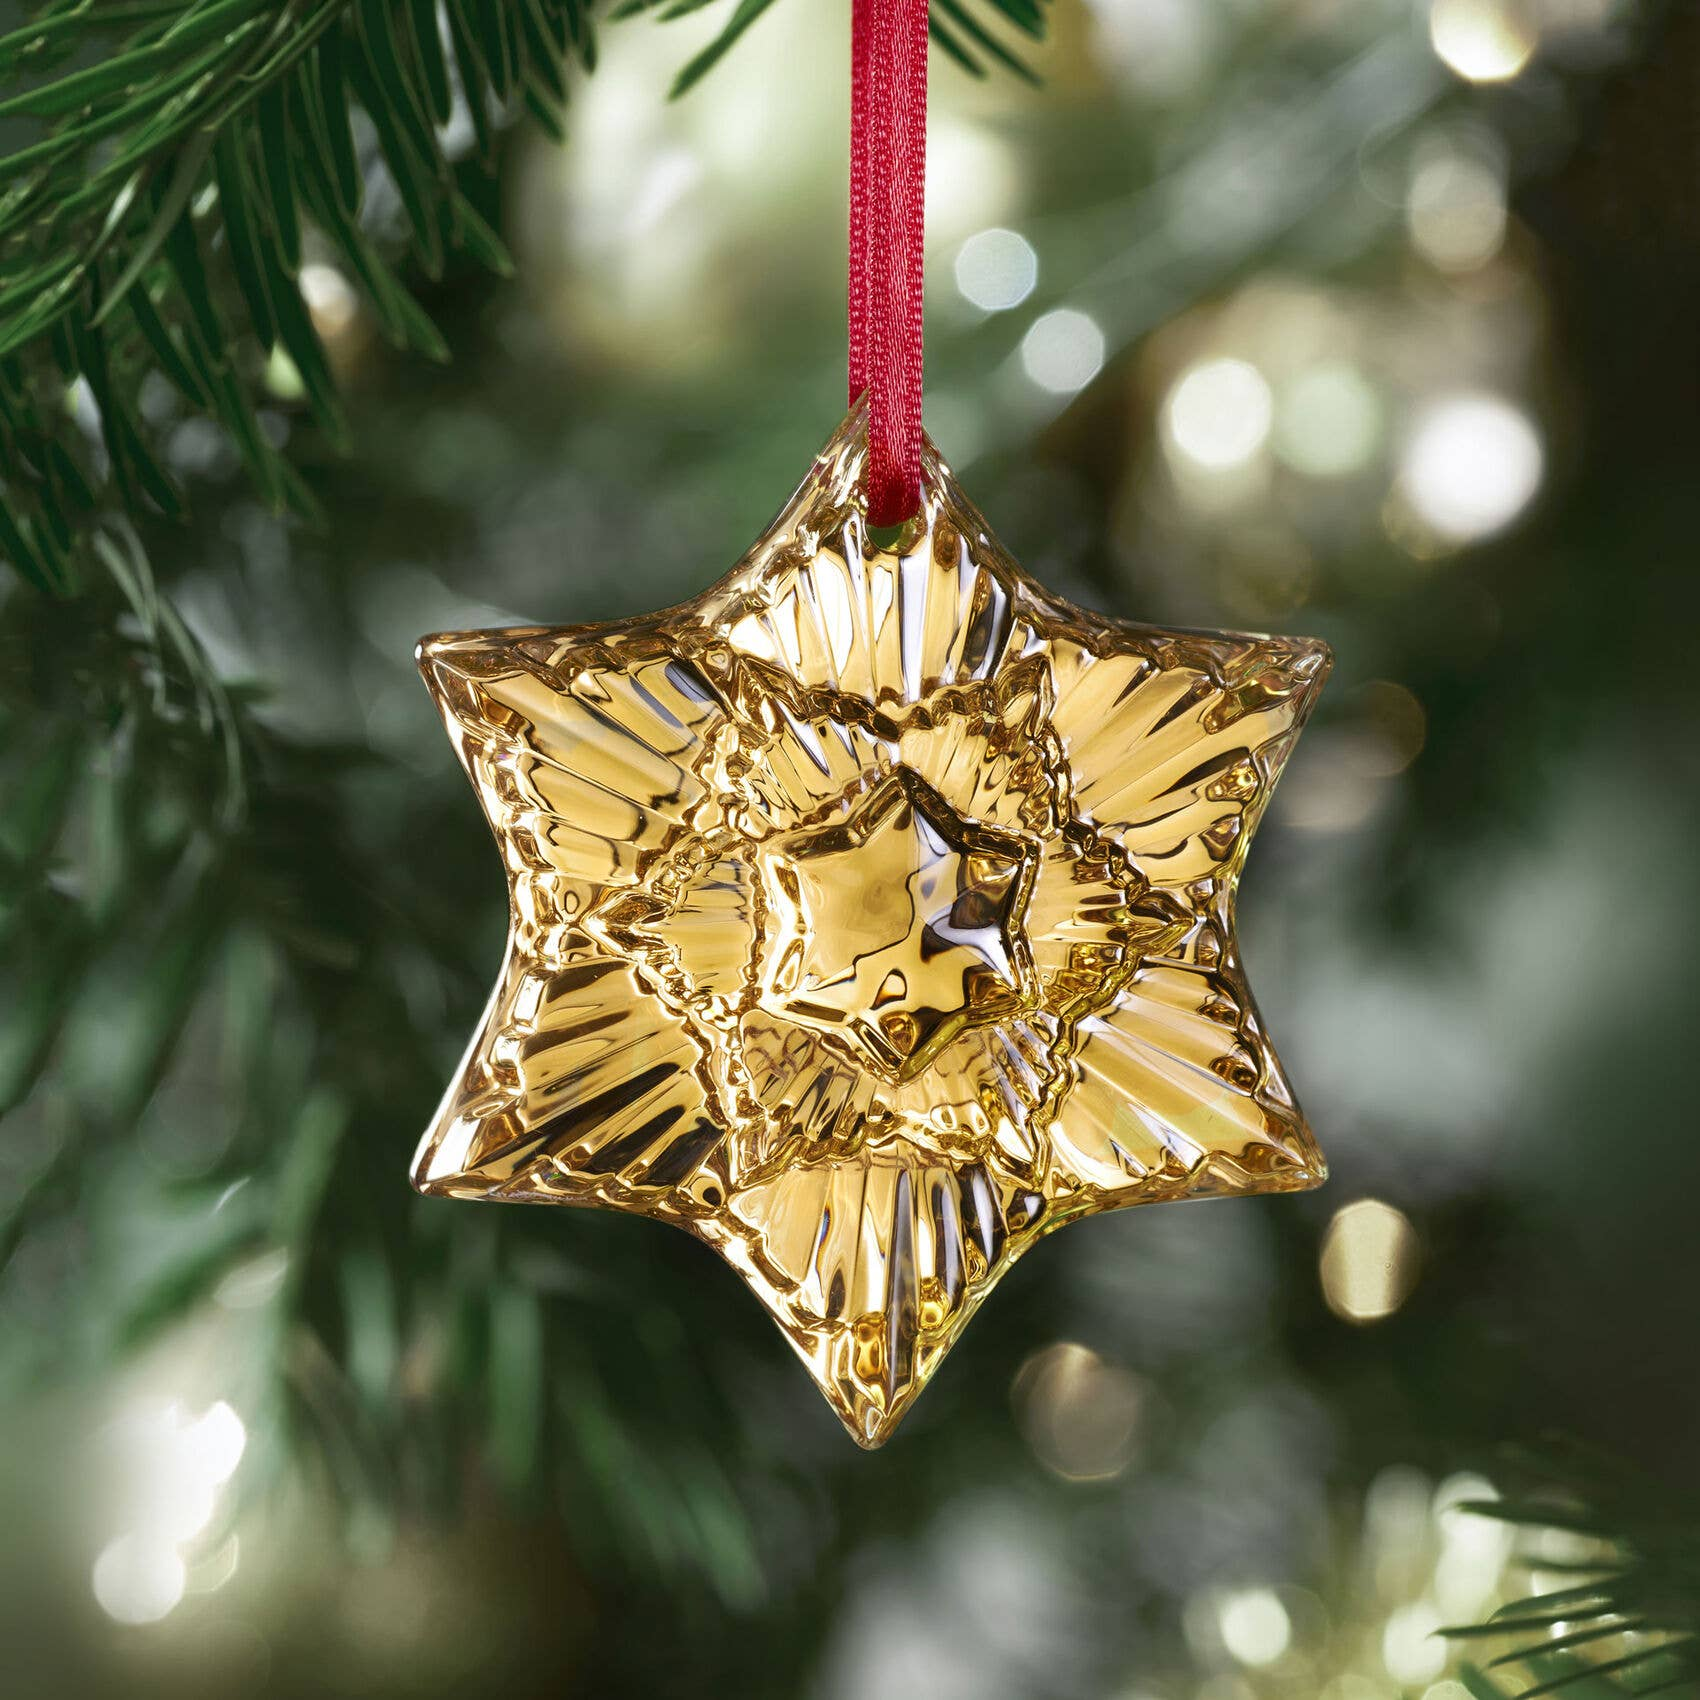 Baccarat 2020 Crystal Ornament in gold